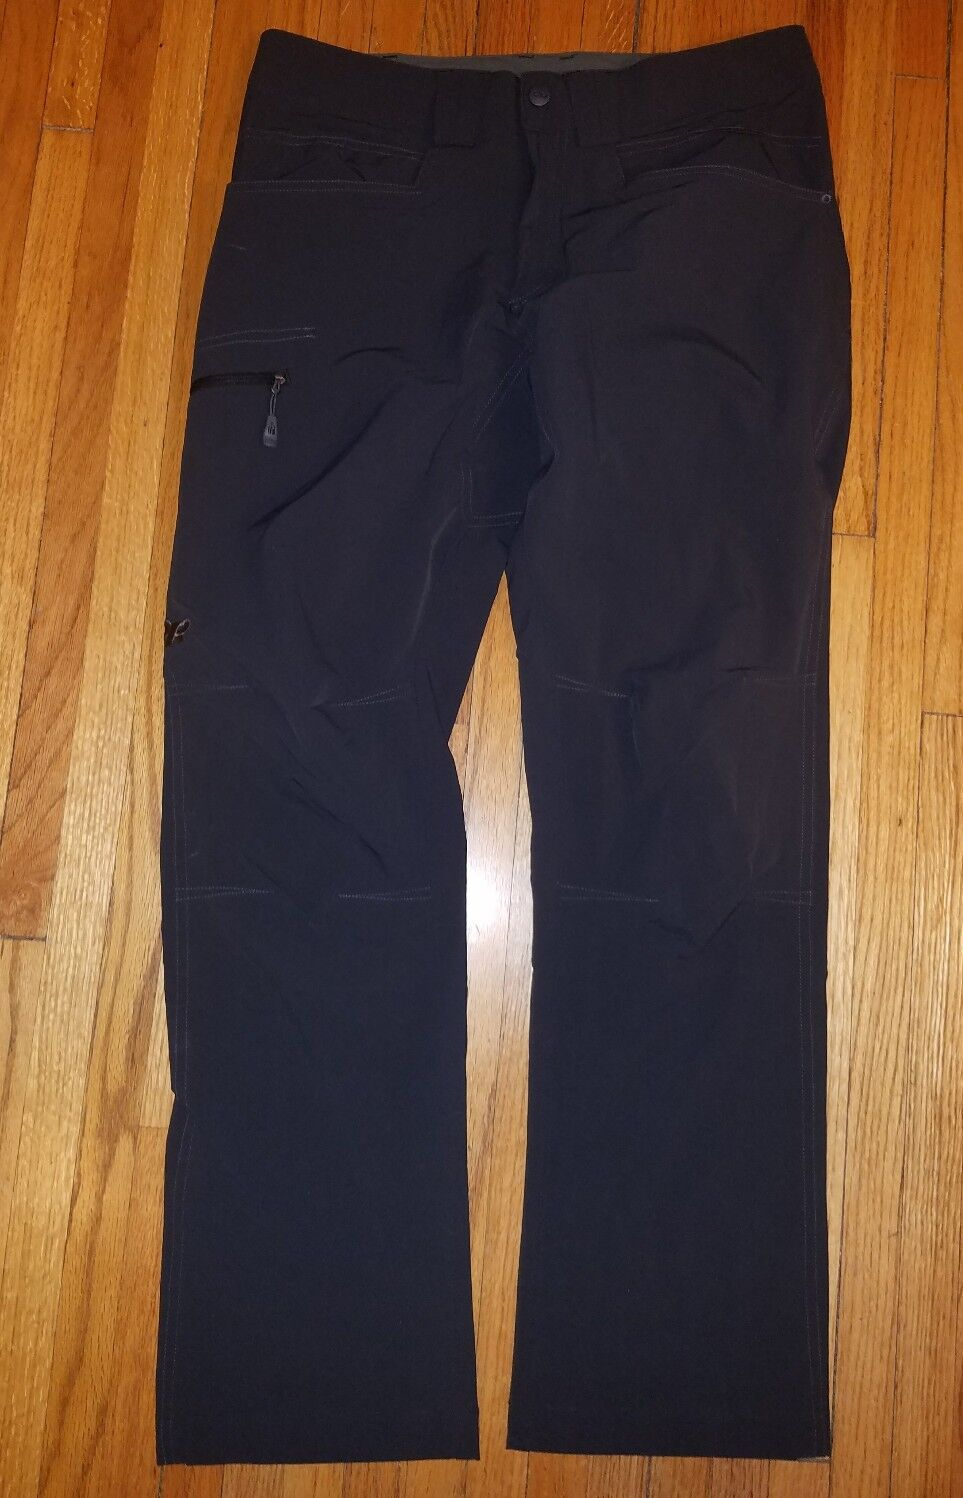 Men's Outdoor Research Voodoo pants in charcoal size  30  up to 60% off